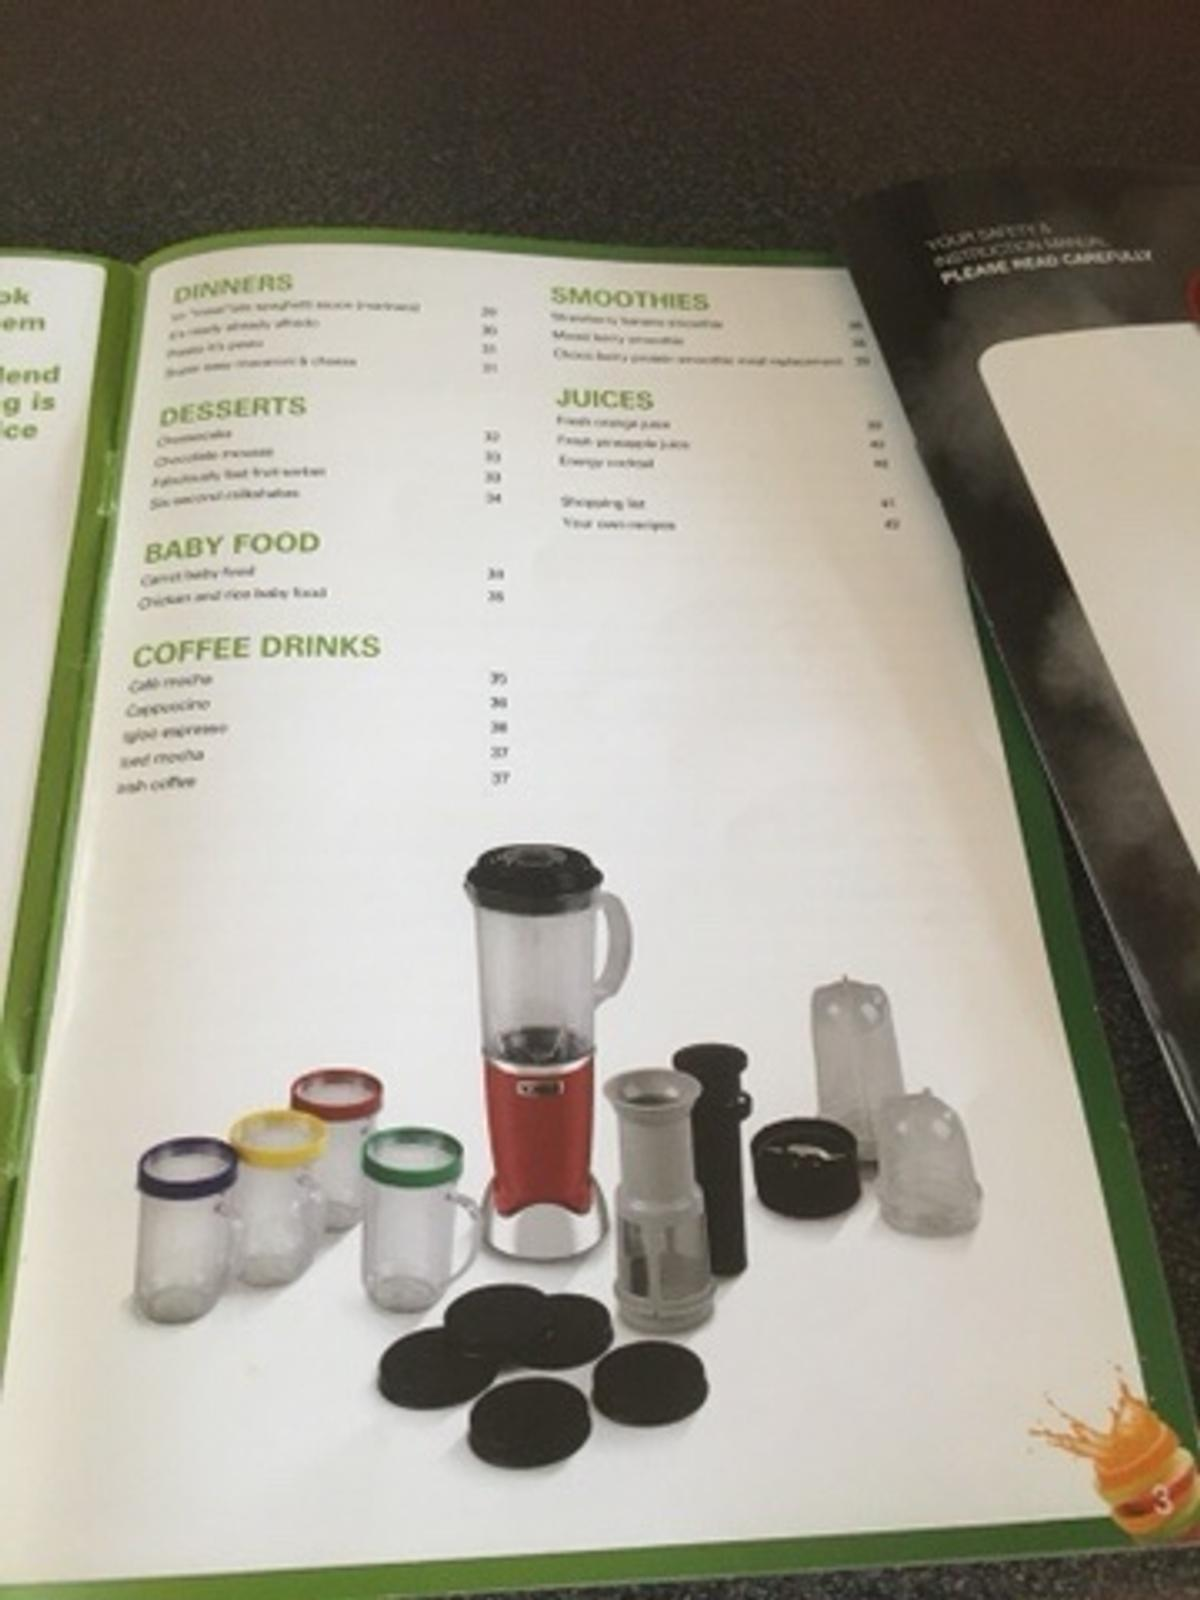 Complete with instruction book, cups for smoothies, juices etc. Instruction book with recipes, you can.make muffins and lots more